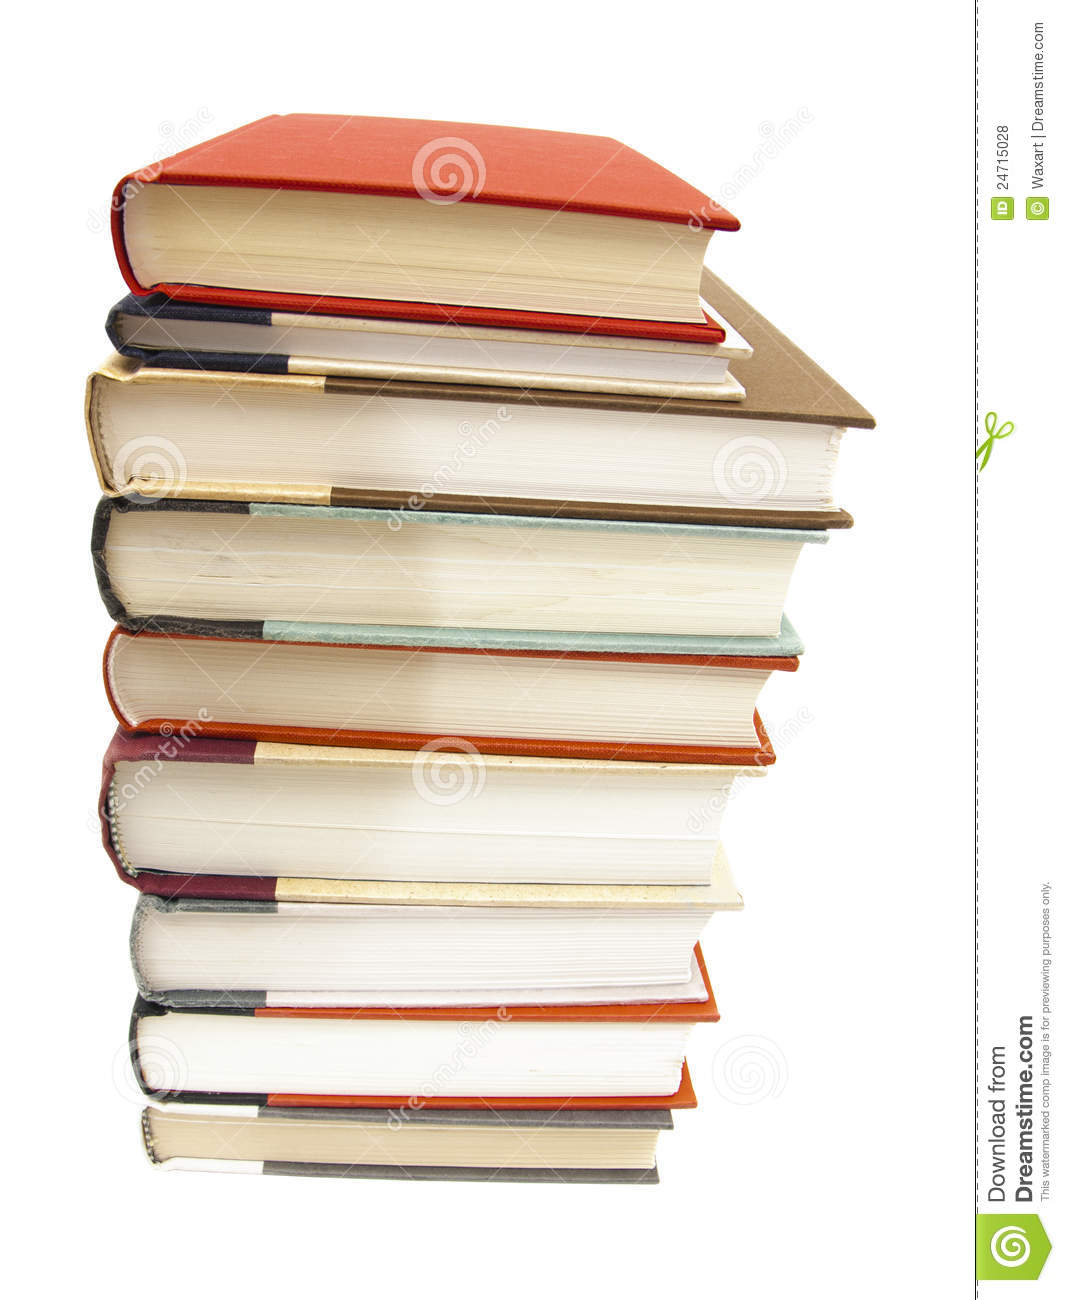 stack of hardcover books on white background royalty free